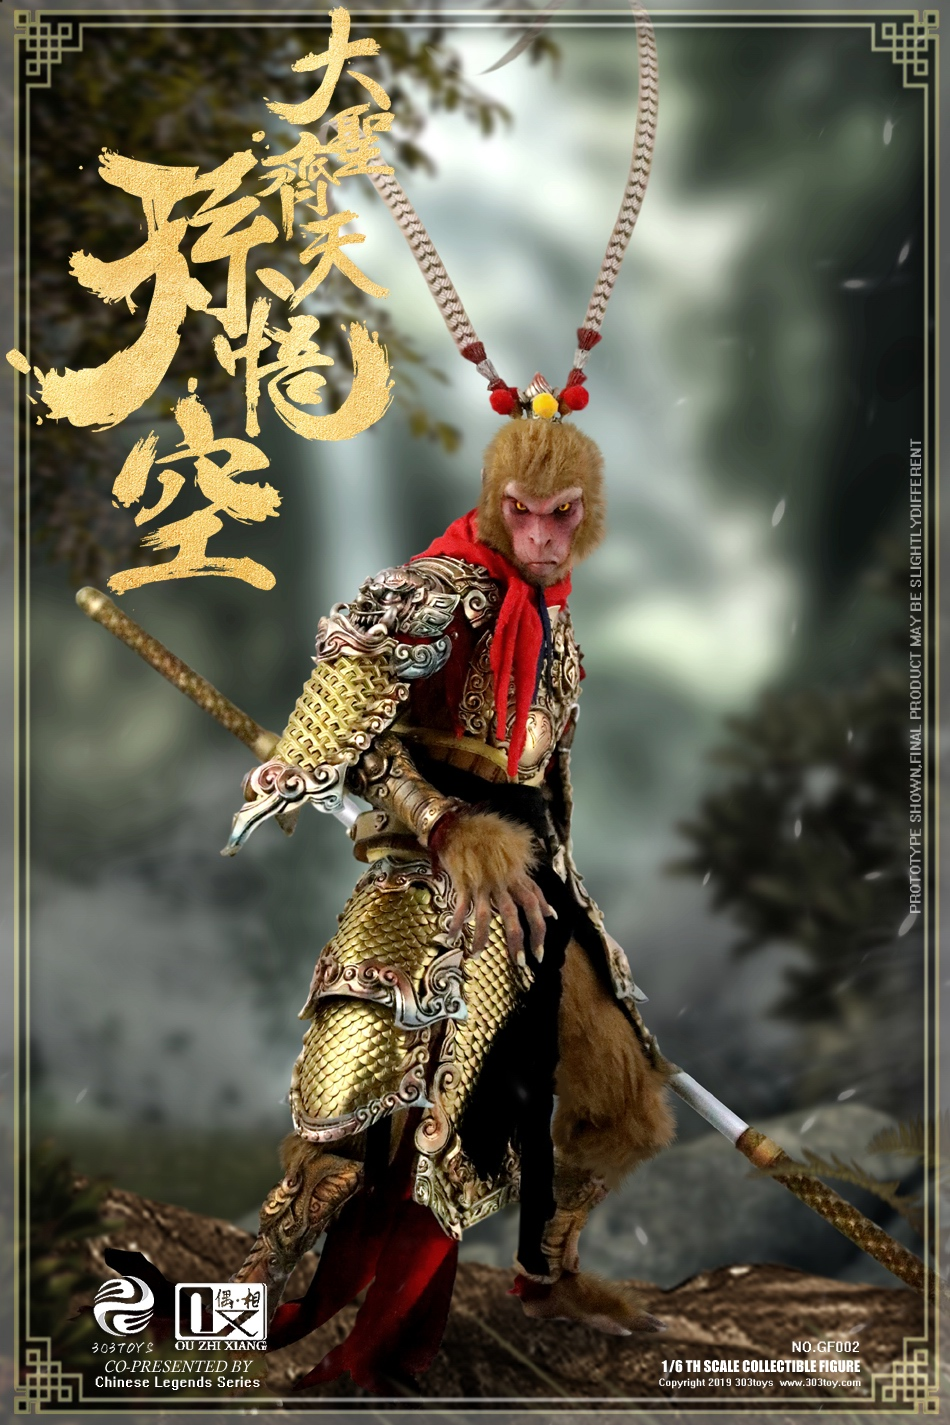 Mythology - NEW PRODUCT: 303TOYS x Evening phase: 1/6 National Wind Legend Series - Sun Wukong Monkey King Apocalypse & Dasheng Qitian & Stepping 18090910